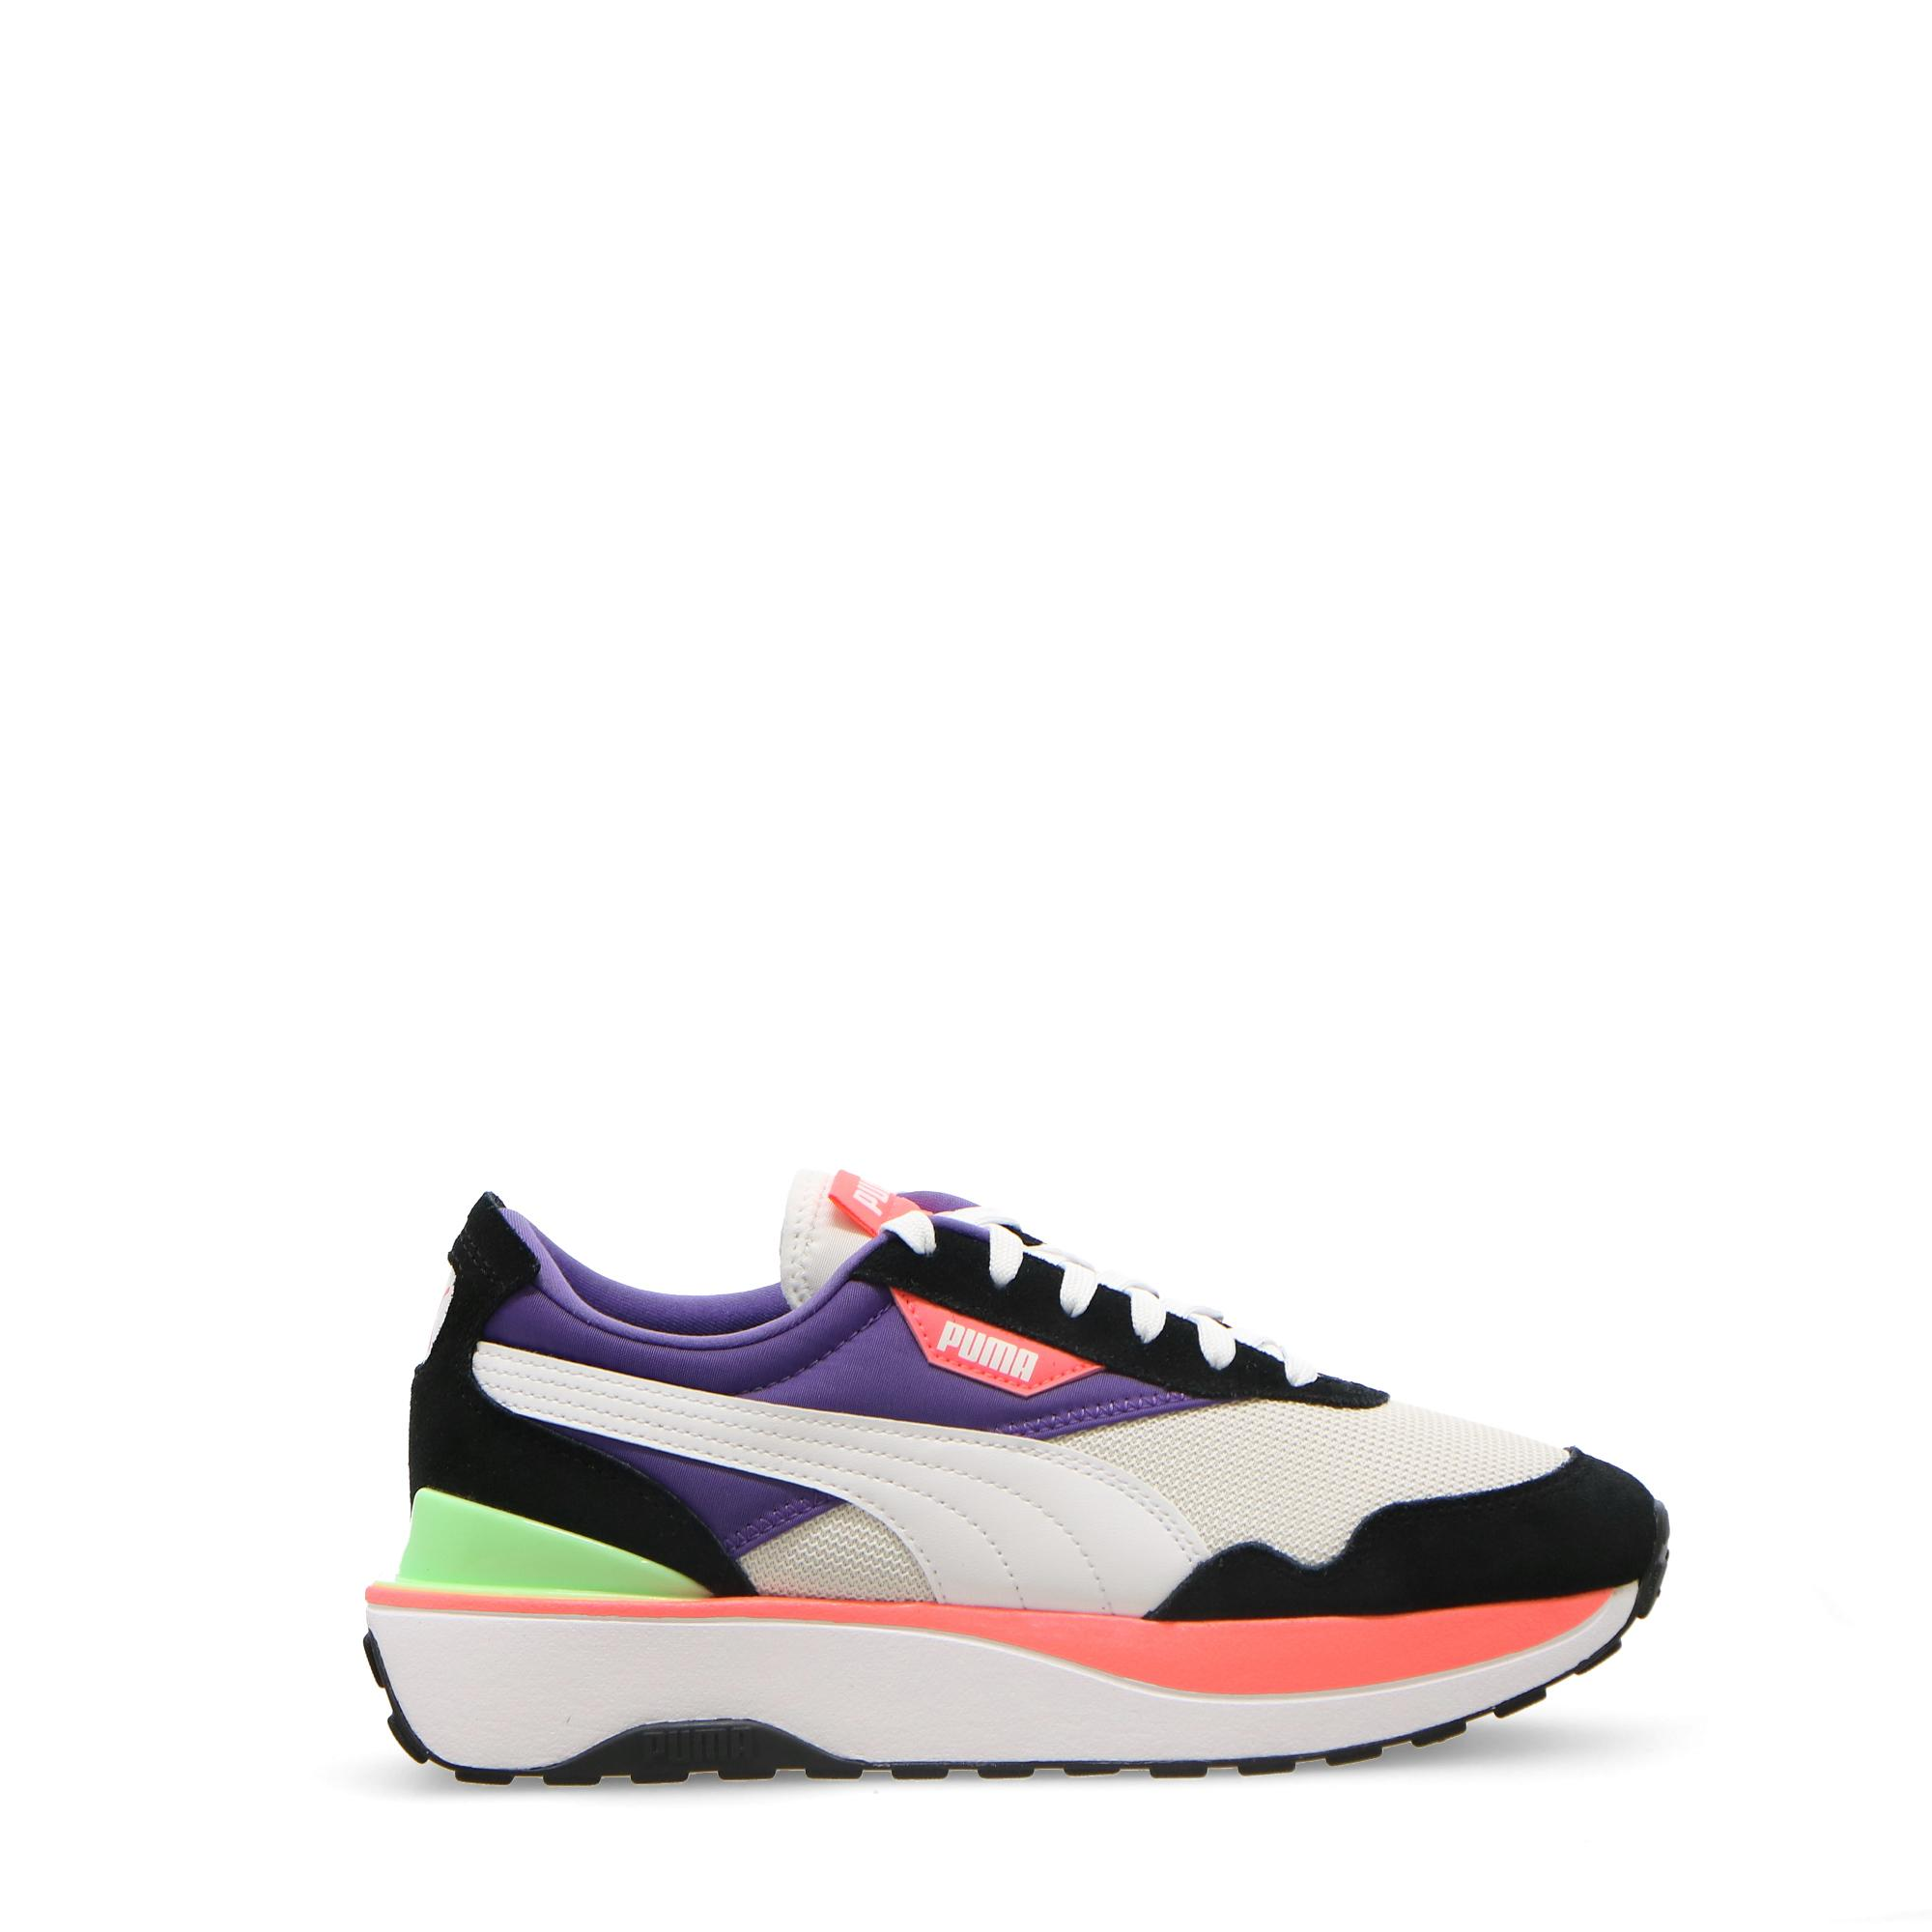 Puma Cruise Rider Silk Road Wmn Black white ignite pink